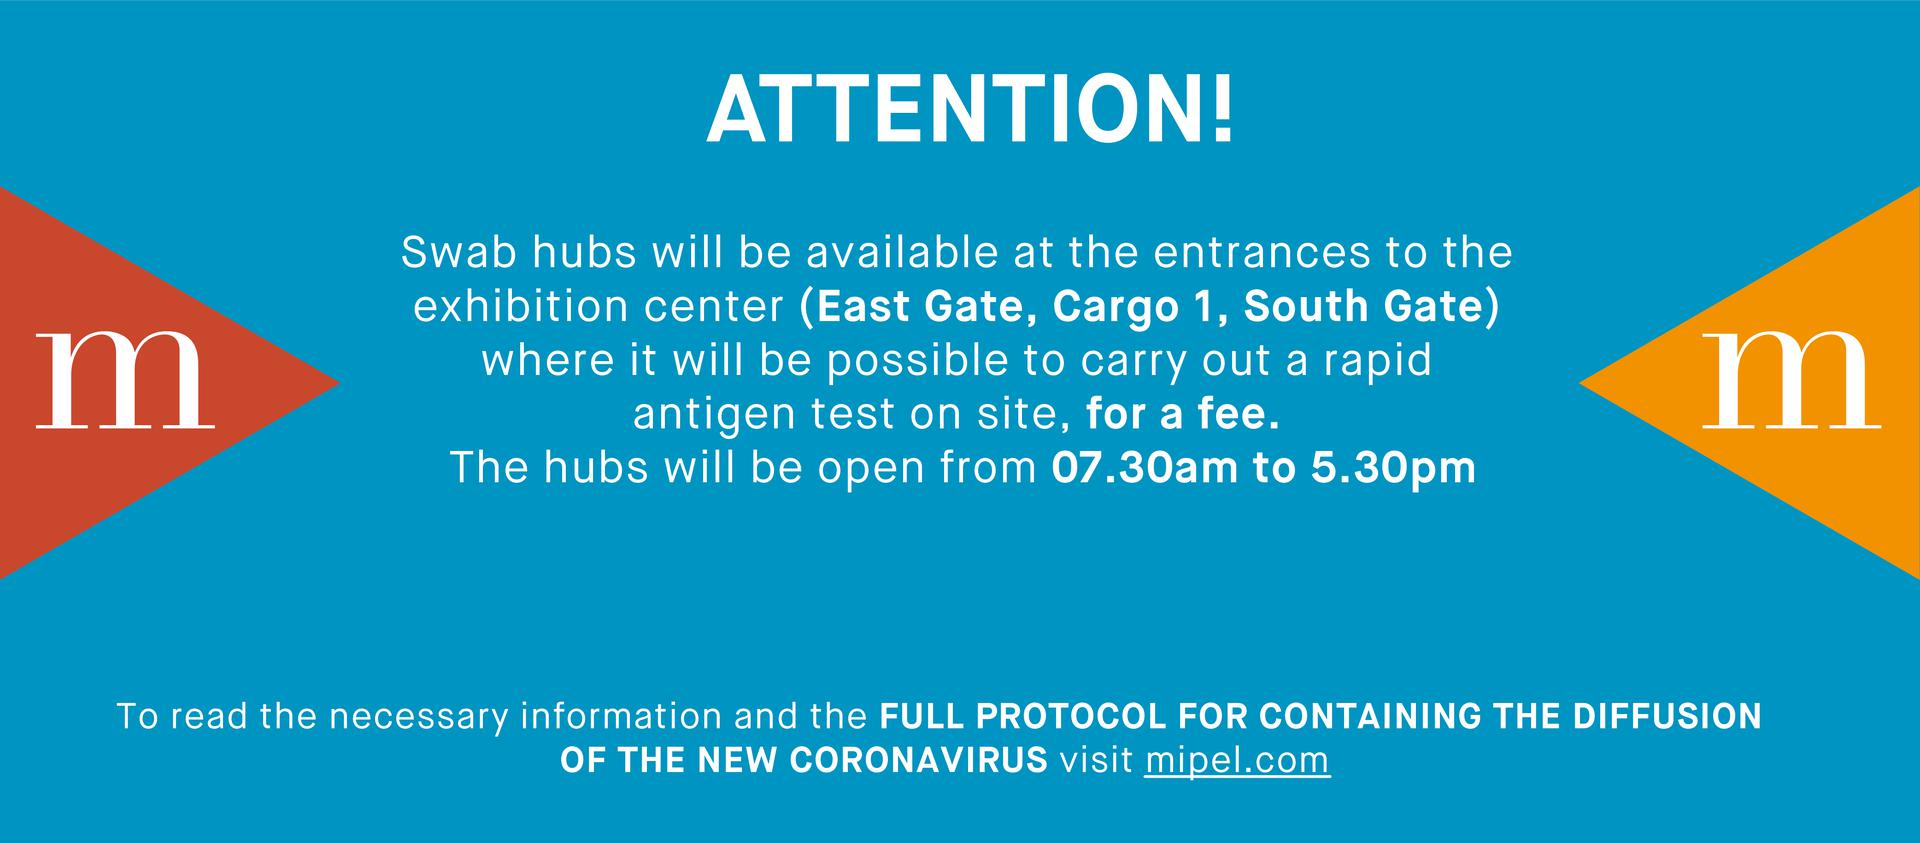 ATTENTION! Swab hubs at the exhibition centre (East and South Gate, Cargo 19 - 7.30am-5.30pm